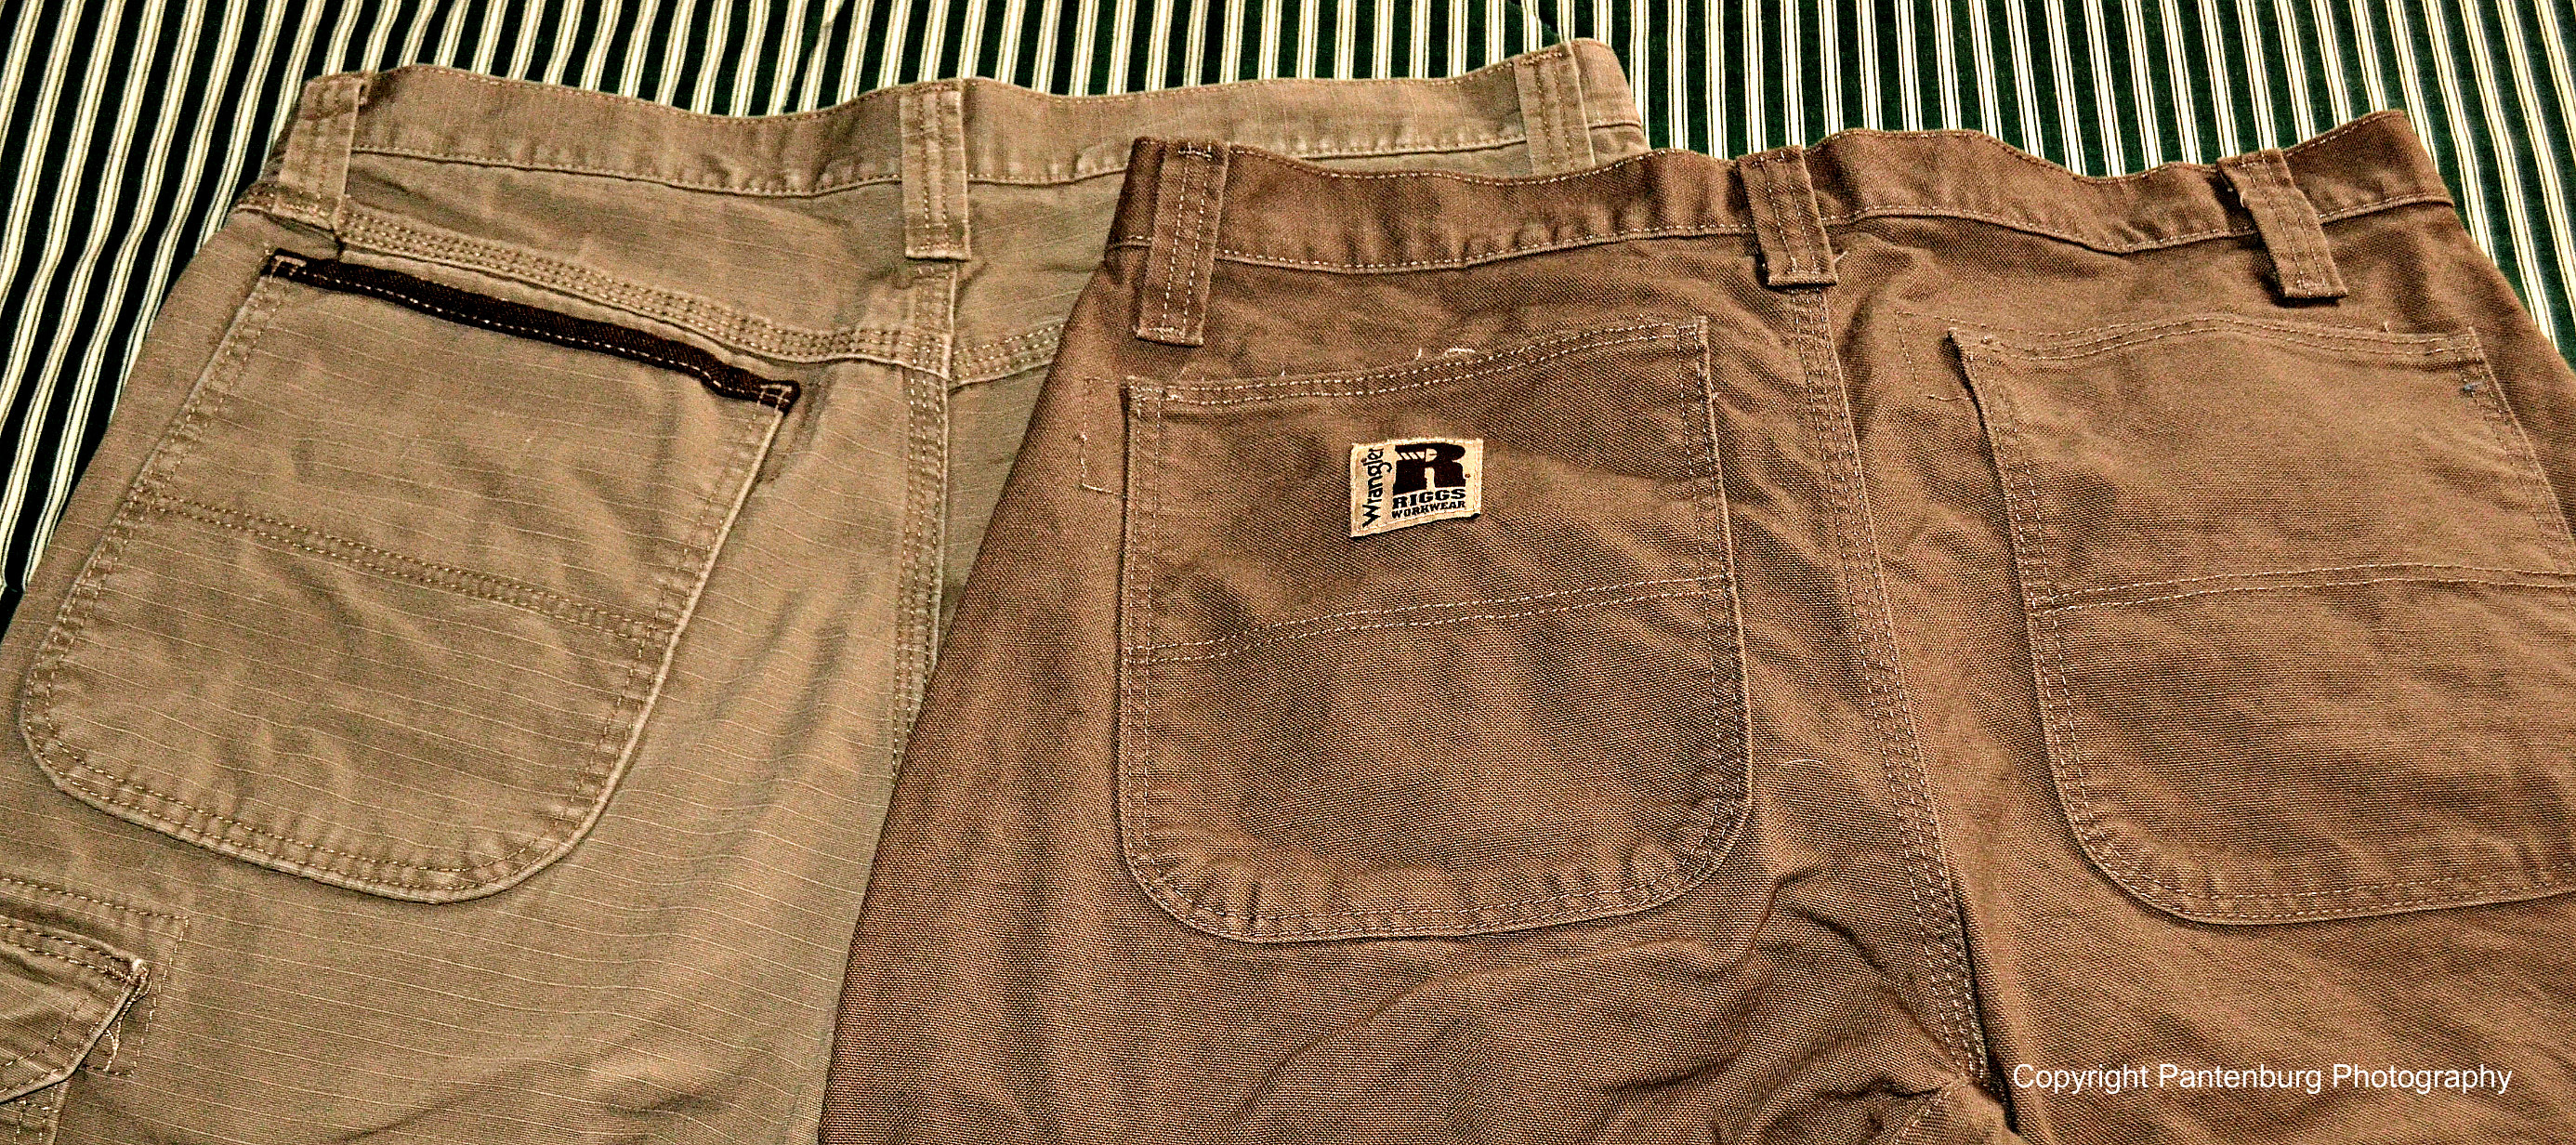 Wrangler Riggs are durable, hard-working pants that are very practical.